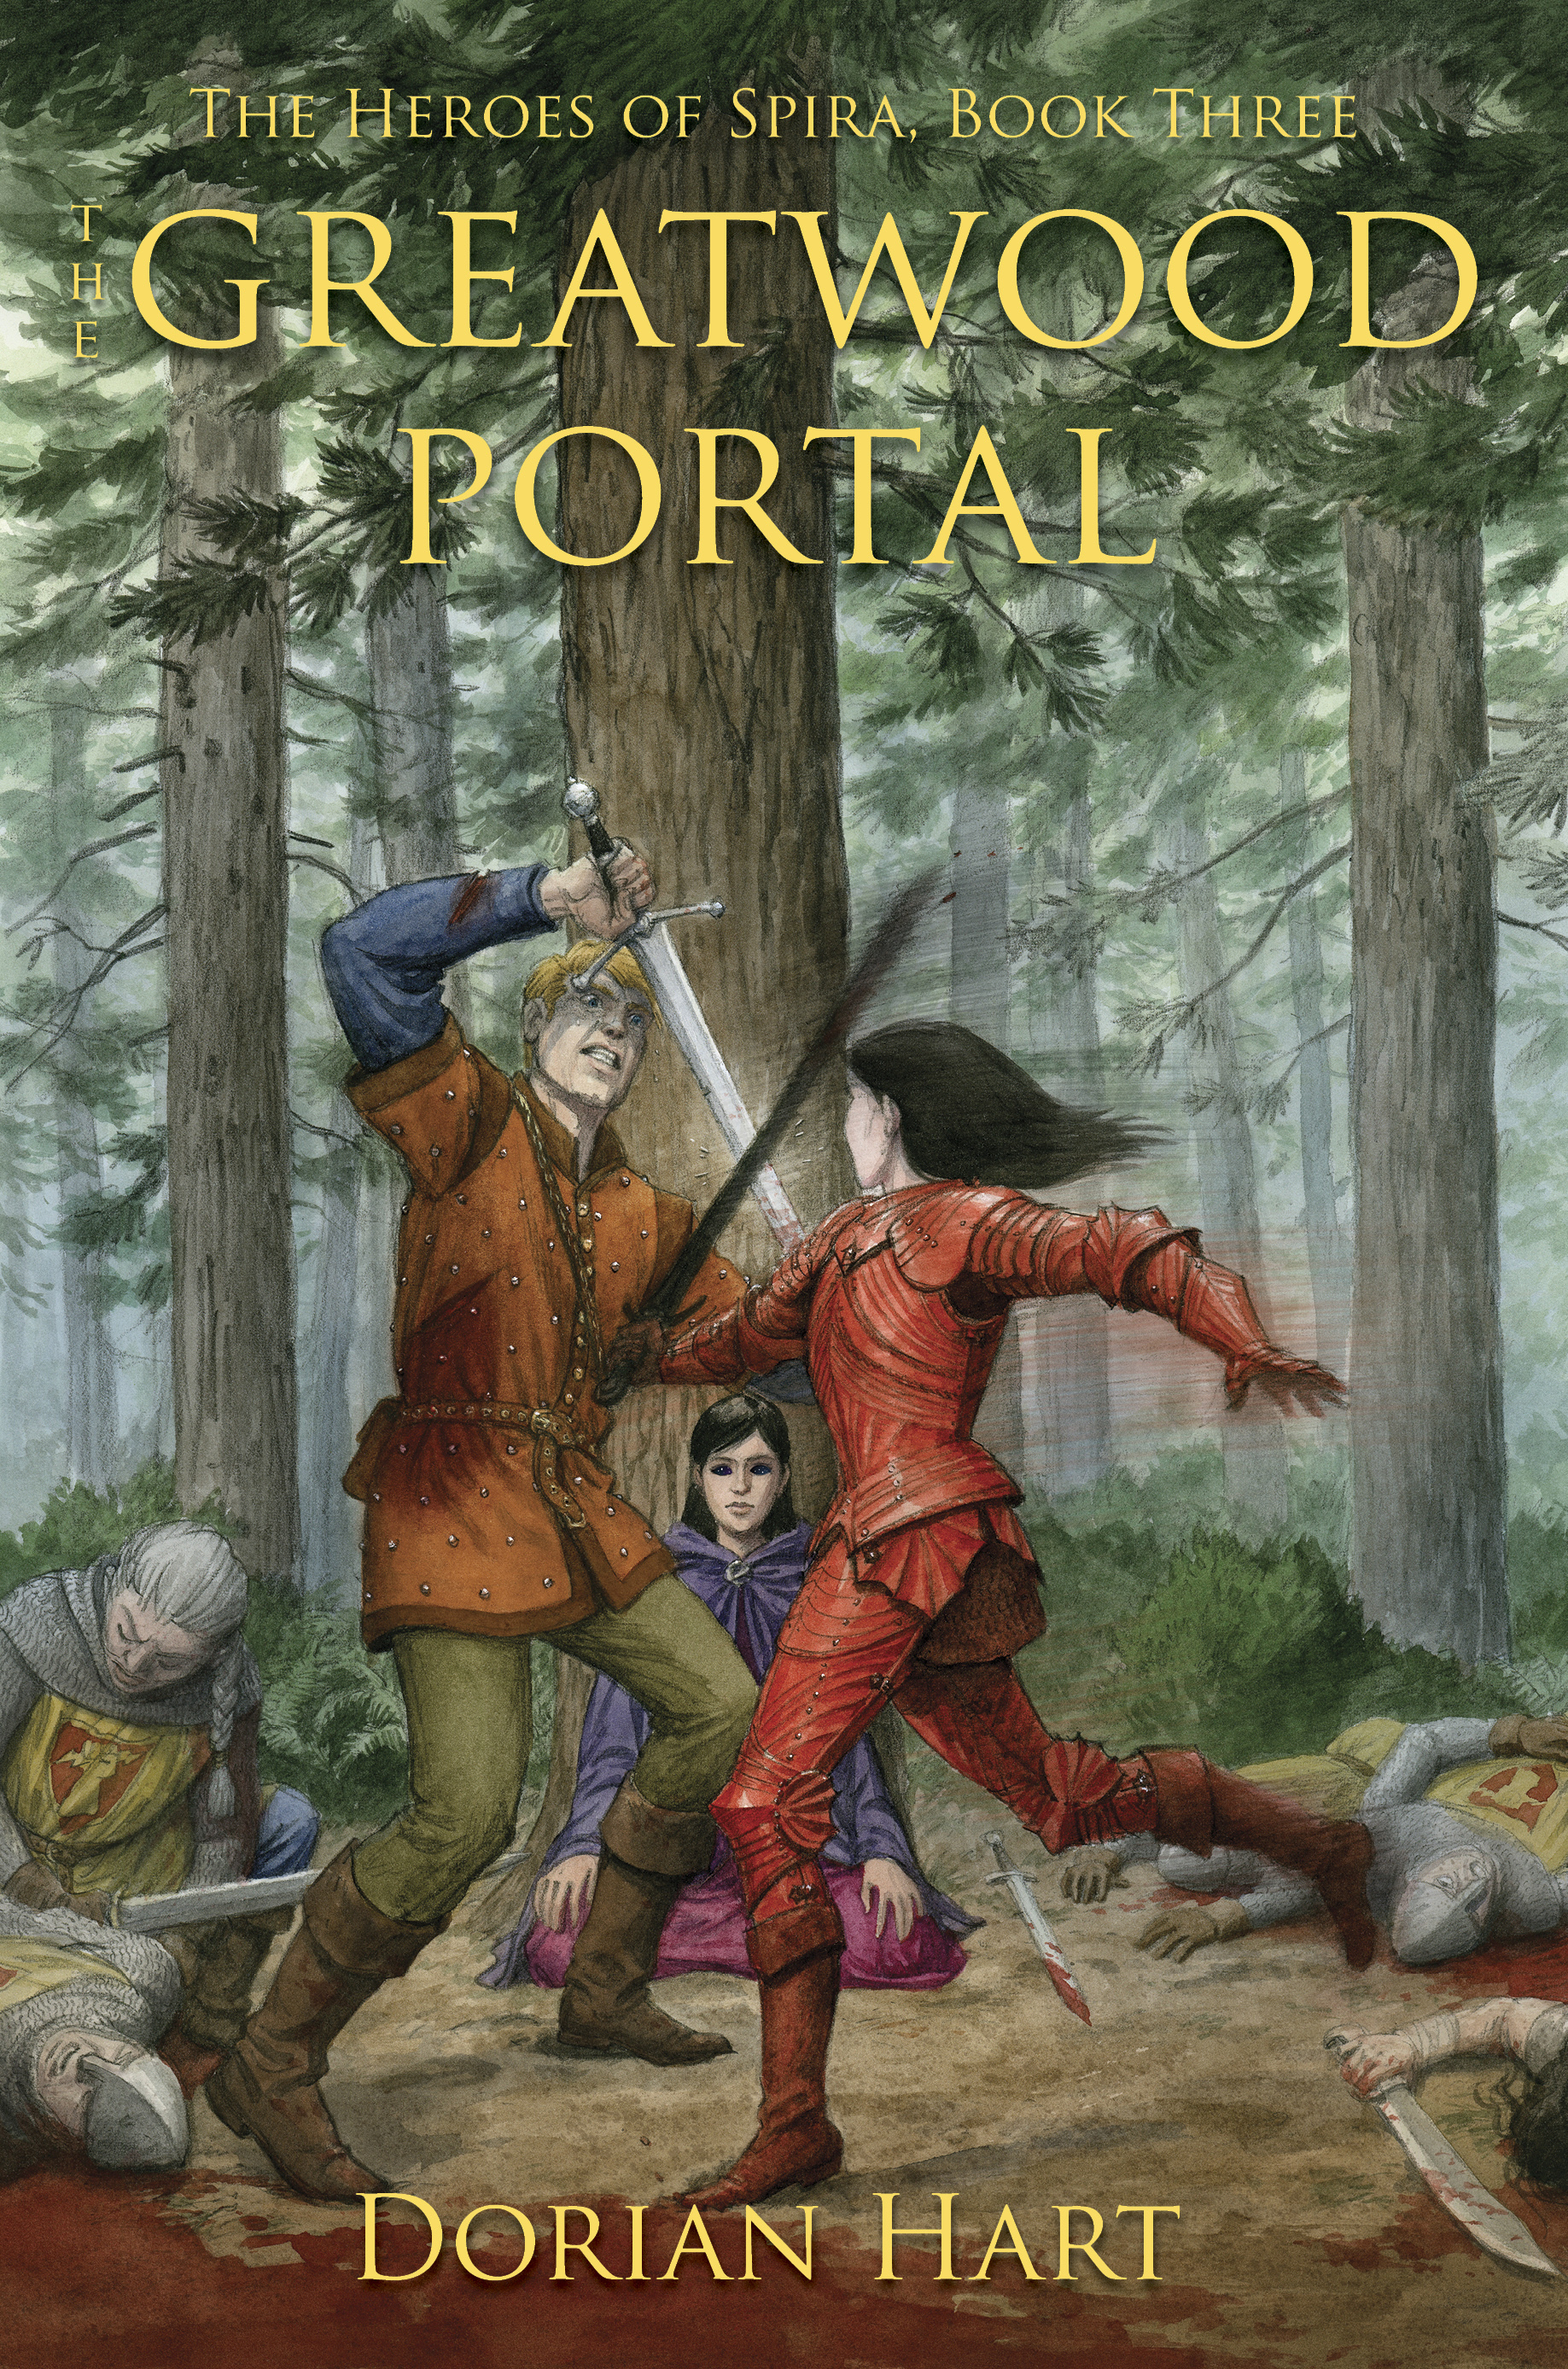 The Greatwood Portal (Heroes of Spira) by Dorian Hart